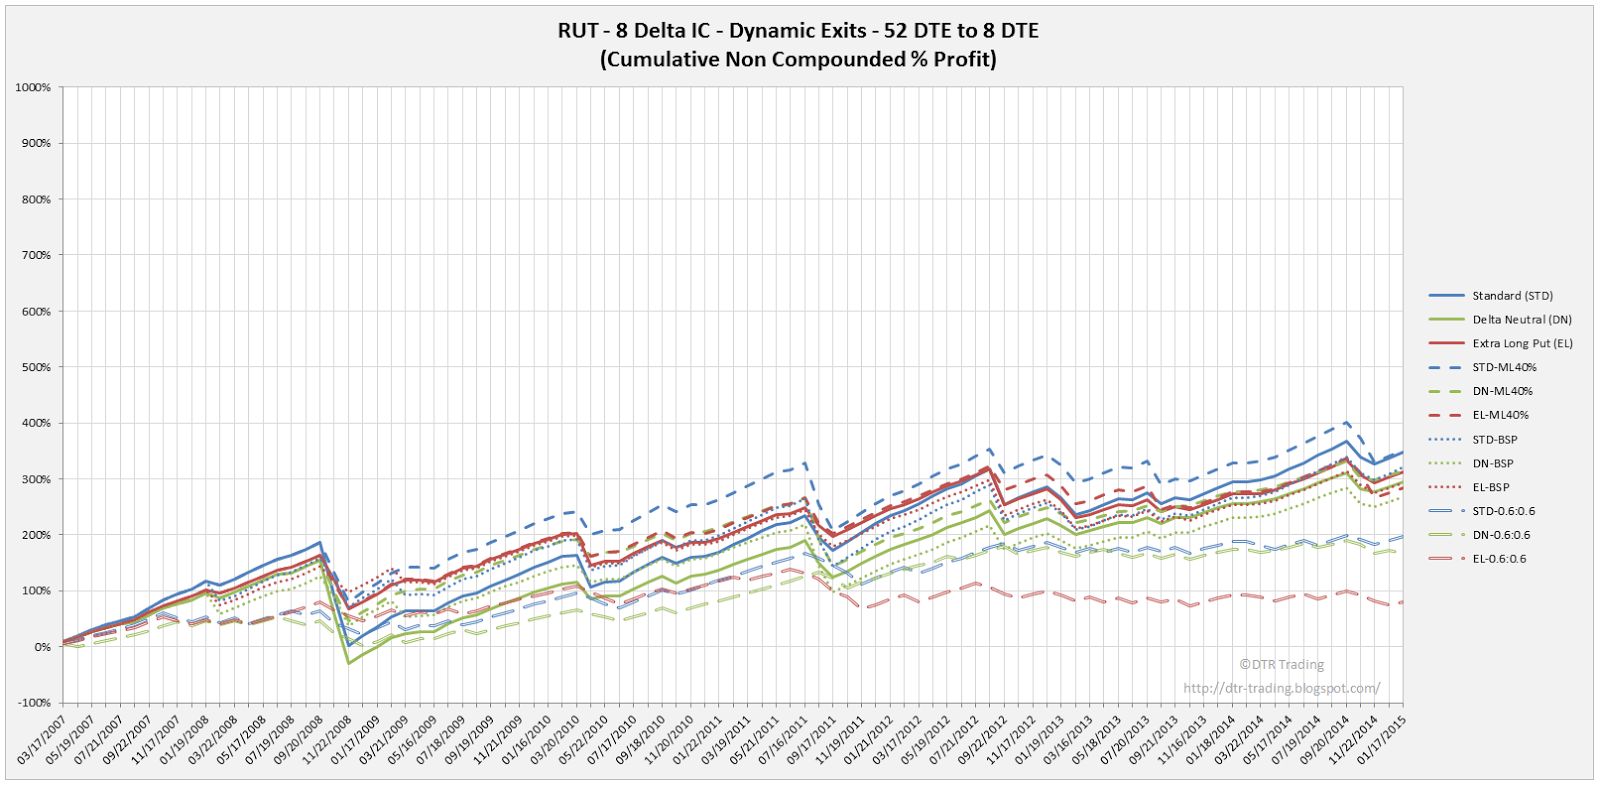 Iron Condor Dynamic Exit Equity Curves RUT 52 DTE 8 Delta All Versions